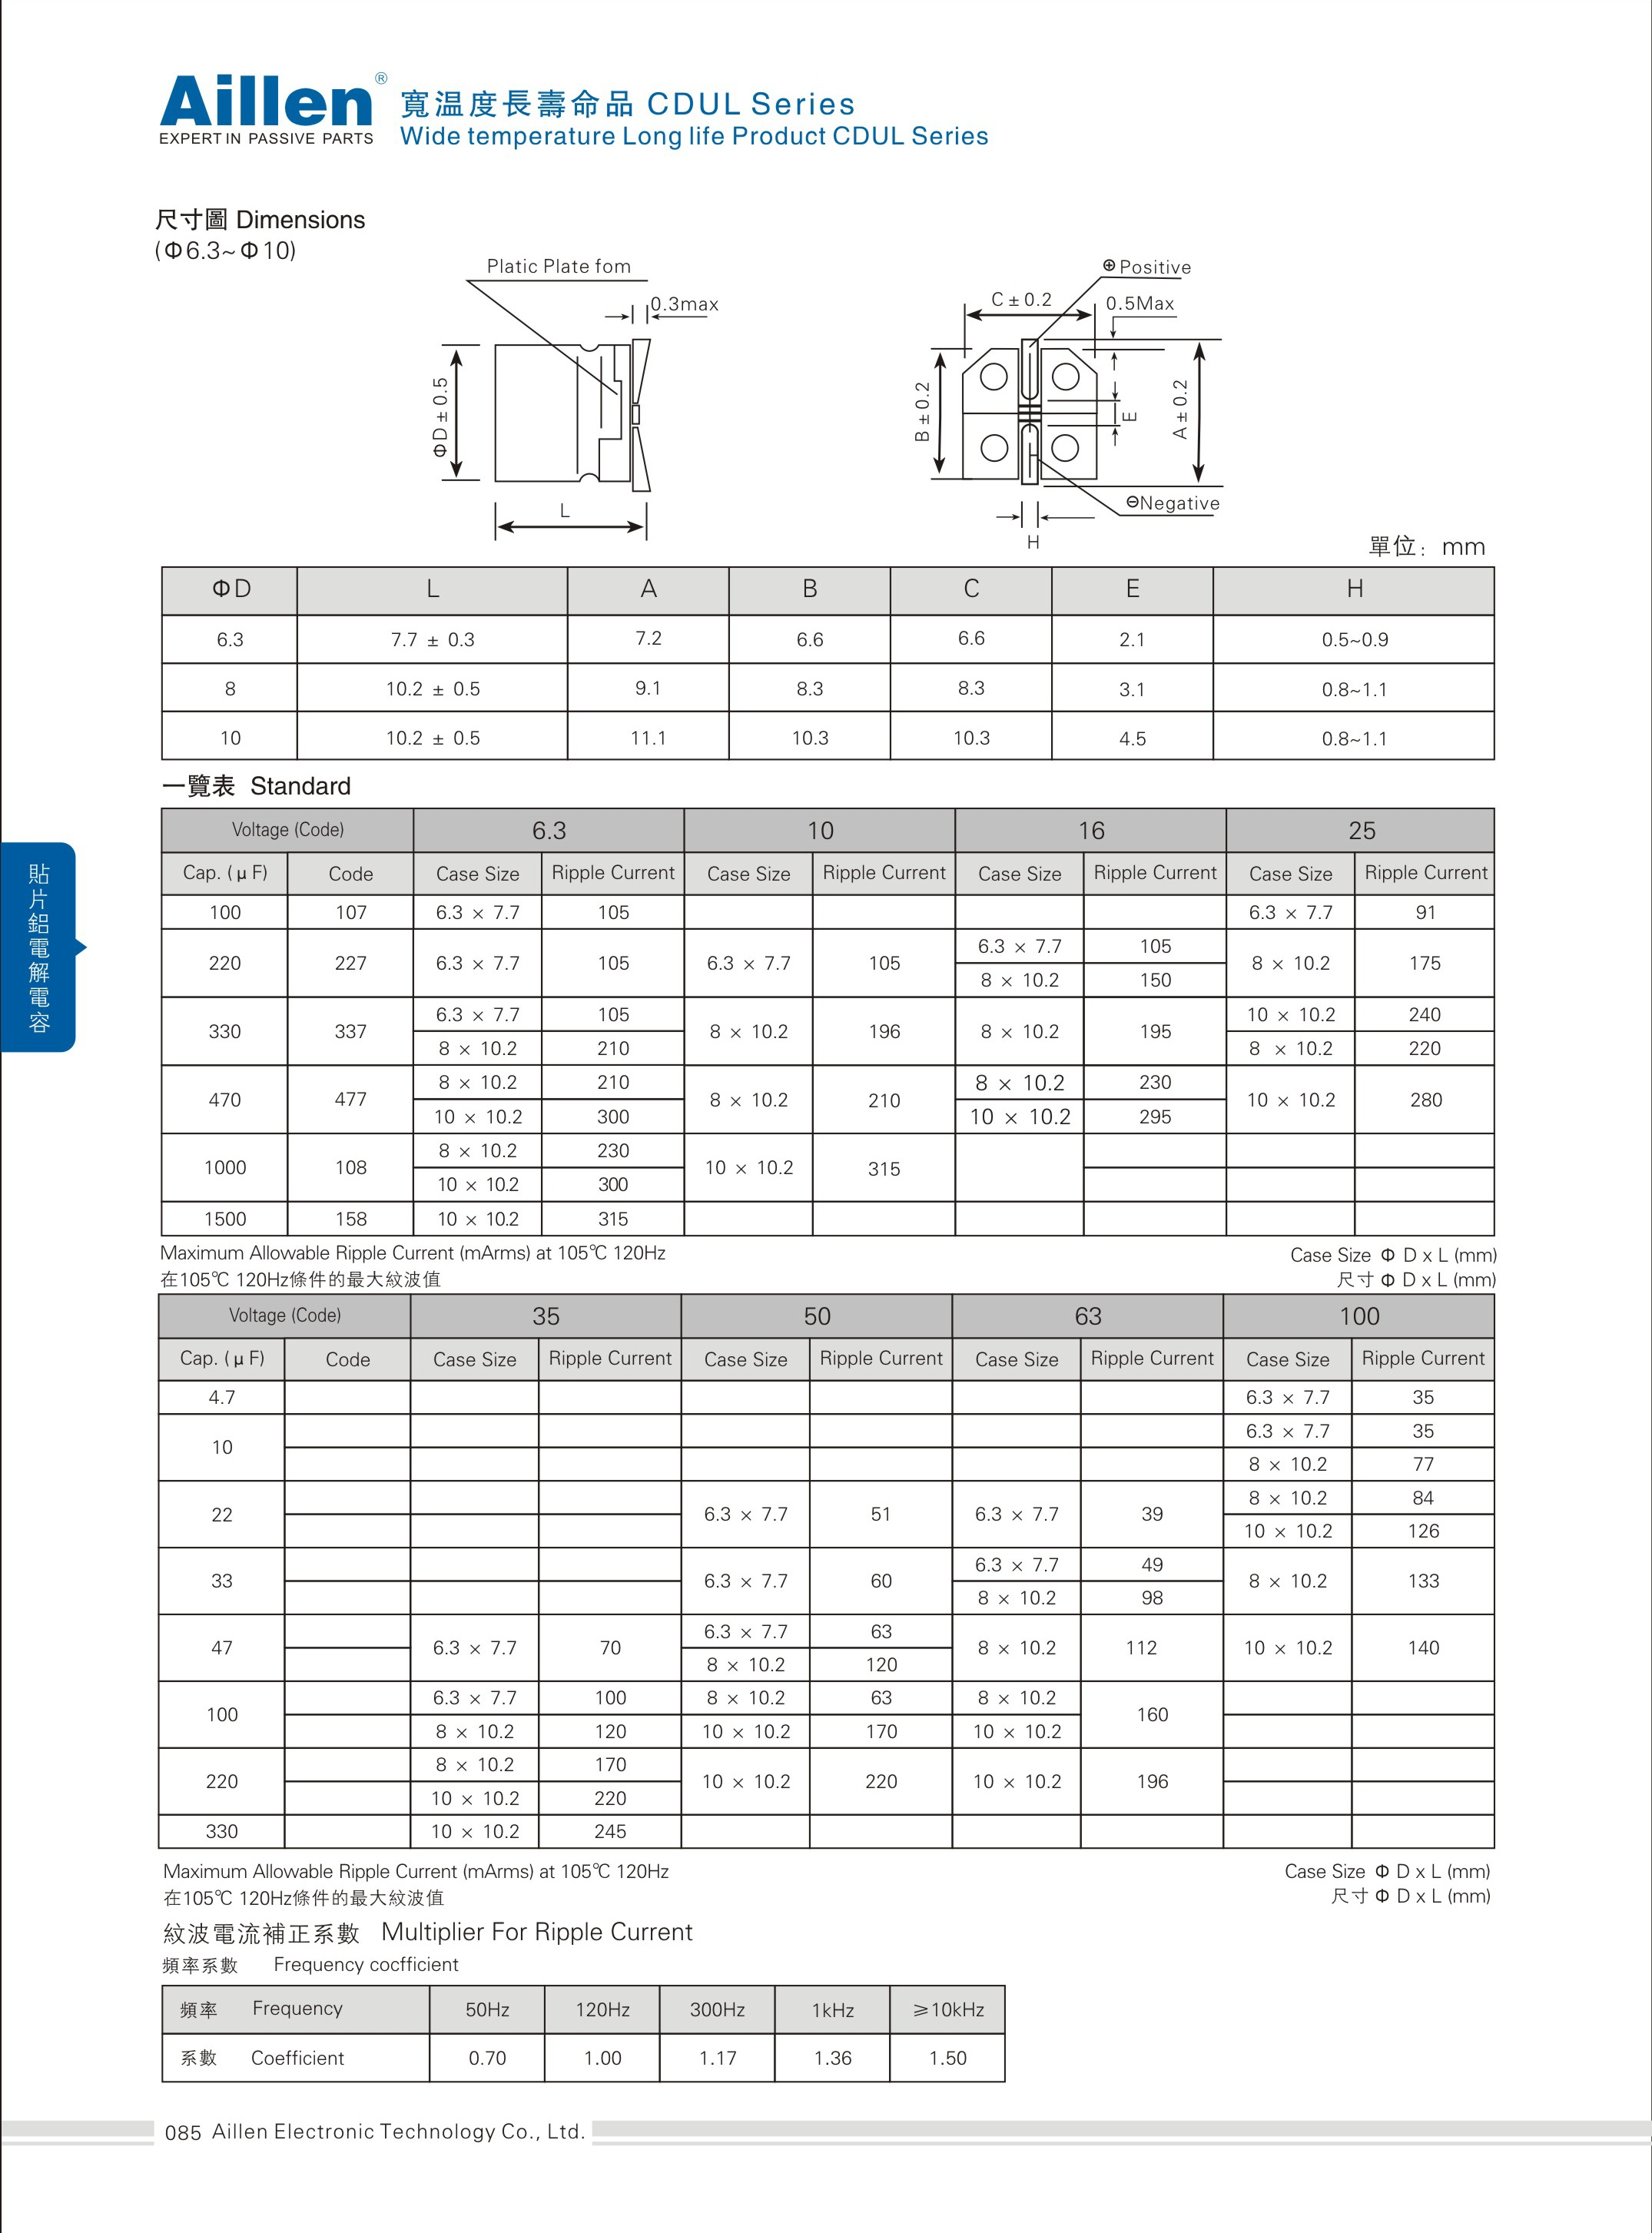 Wide temperature long life product CDUL series